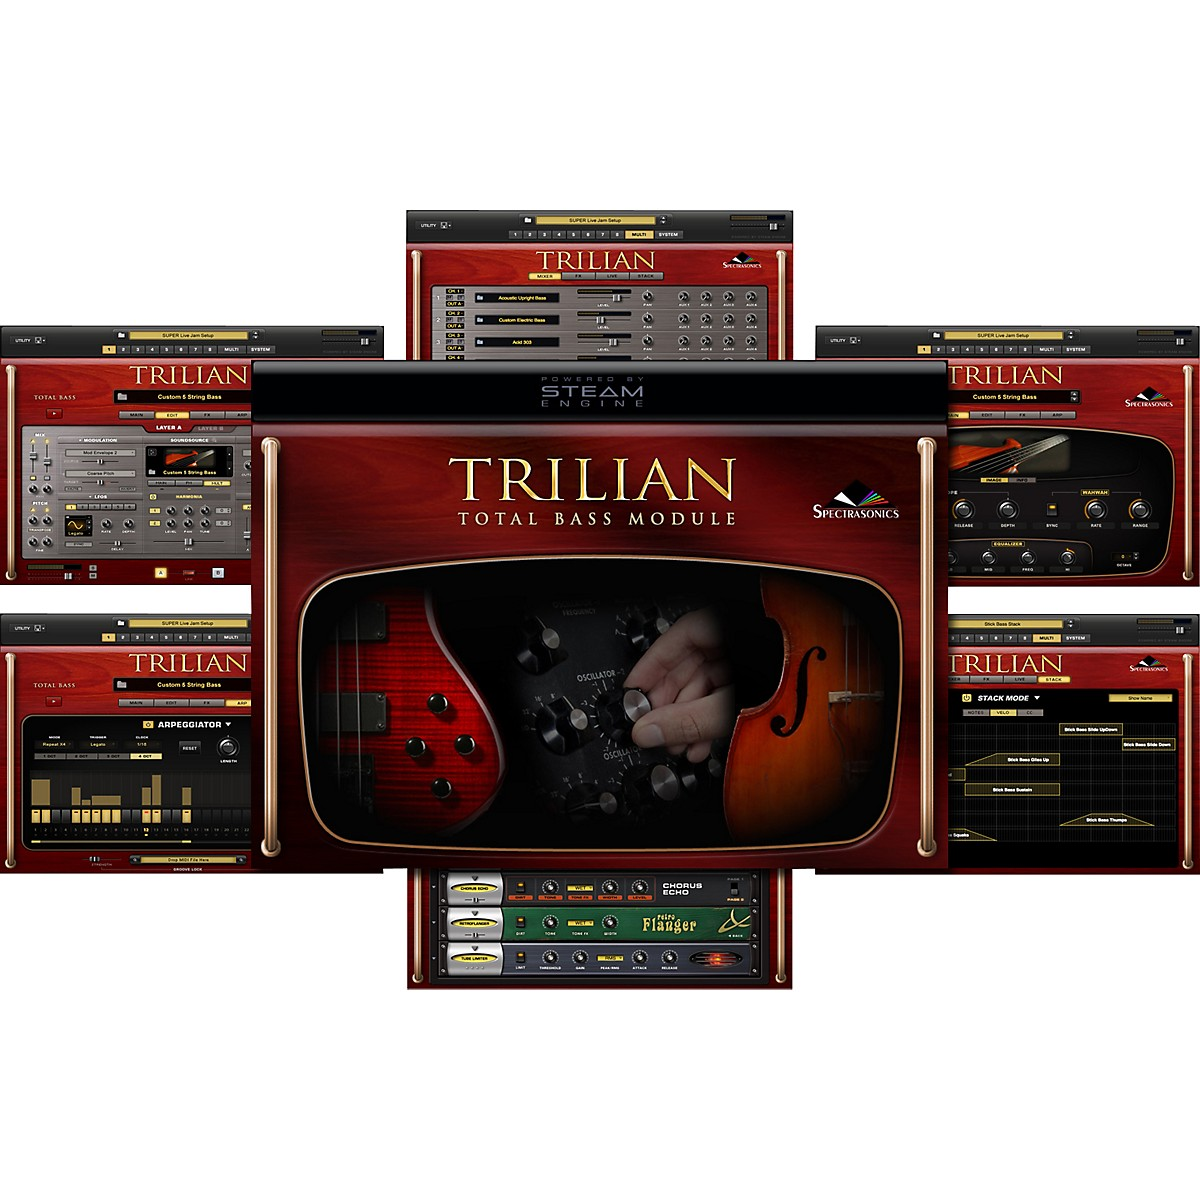 Spectrasonics Spectrasonics Trillian Total Bass Module Software